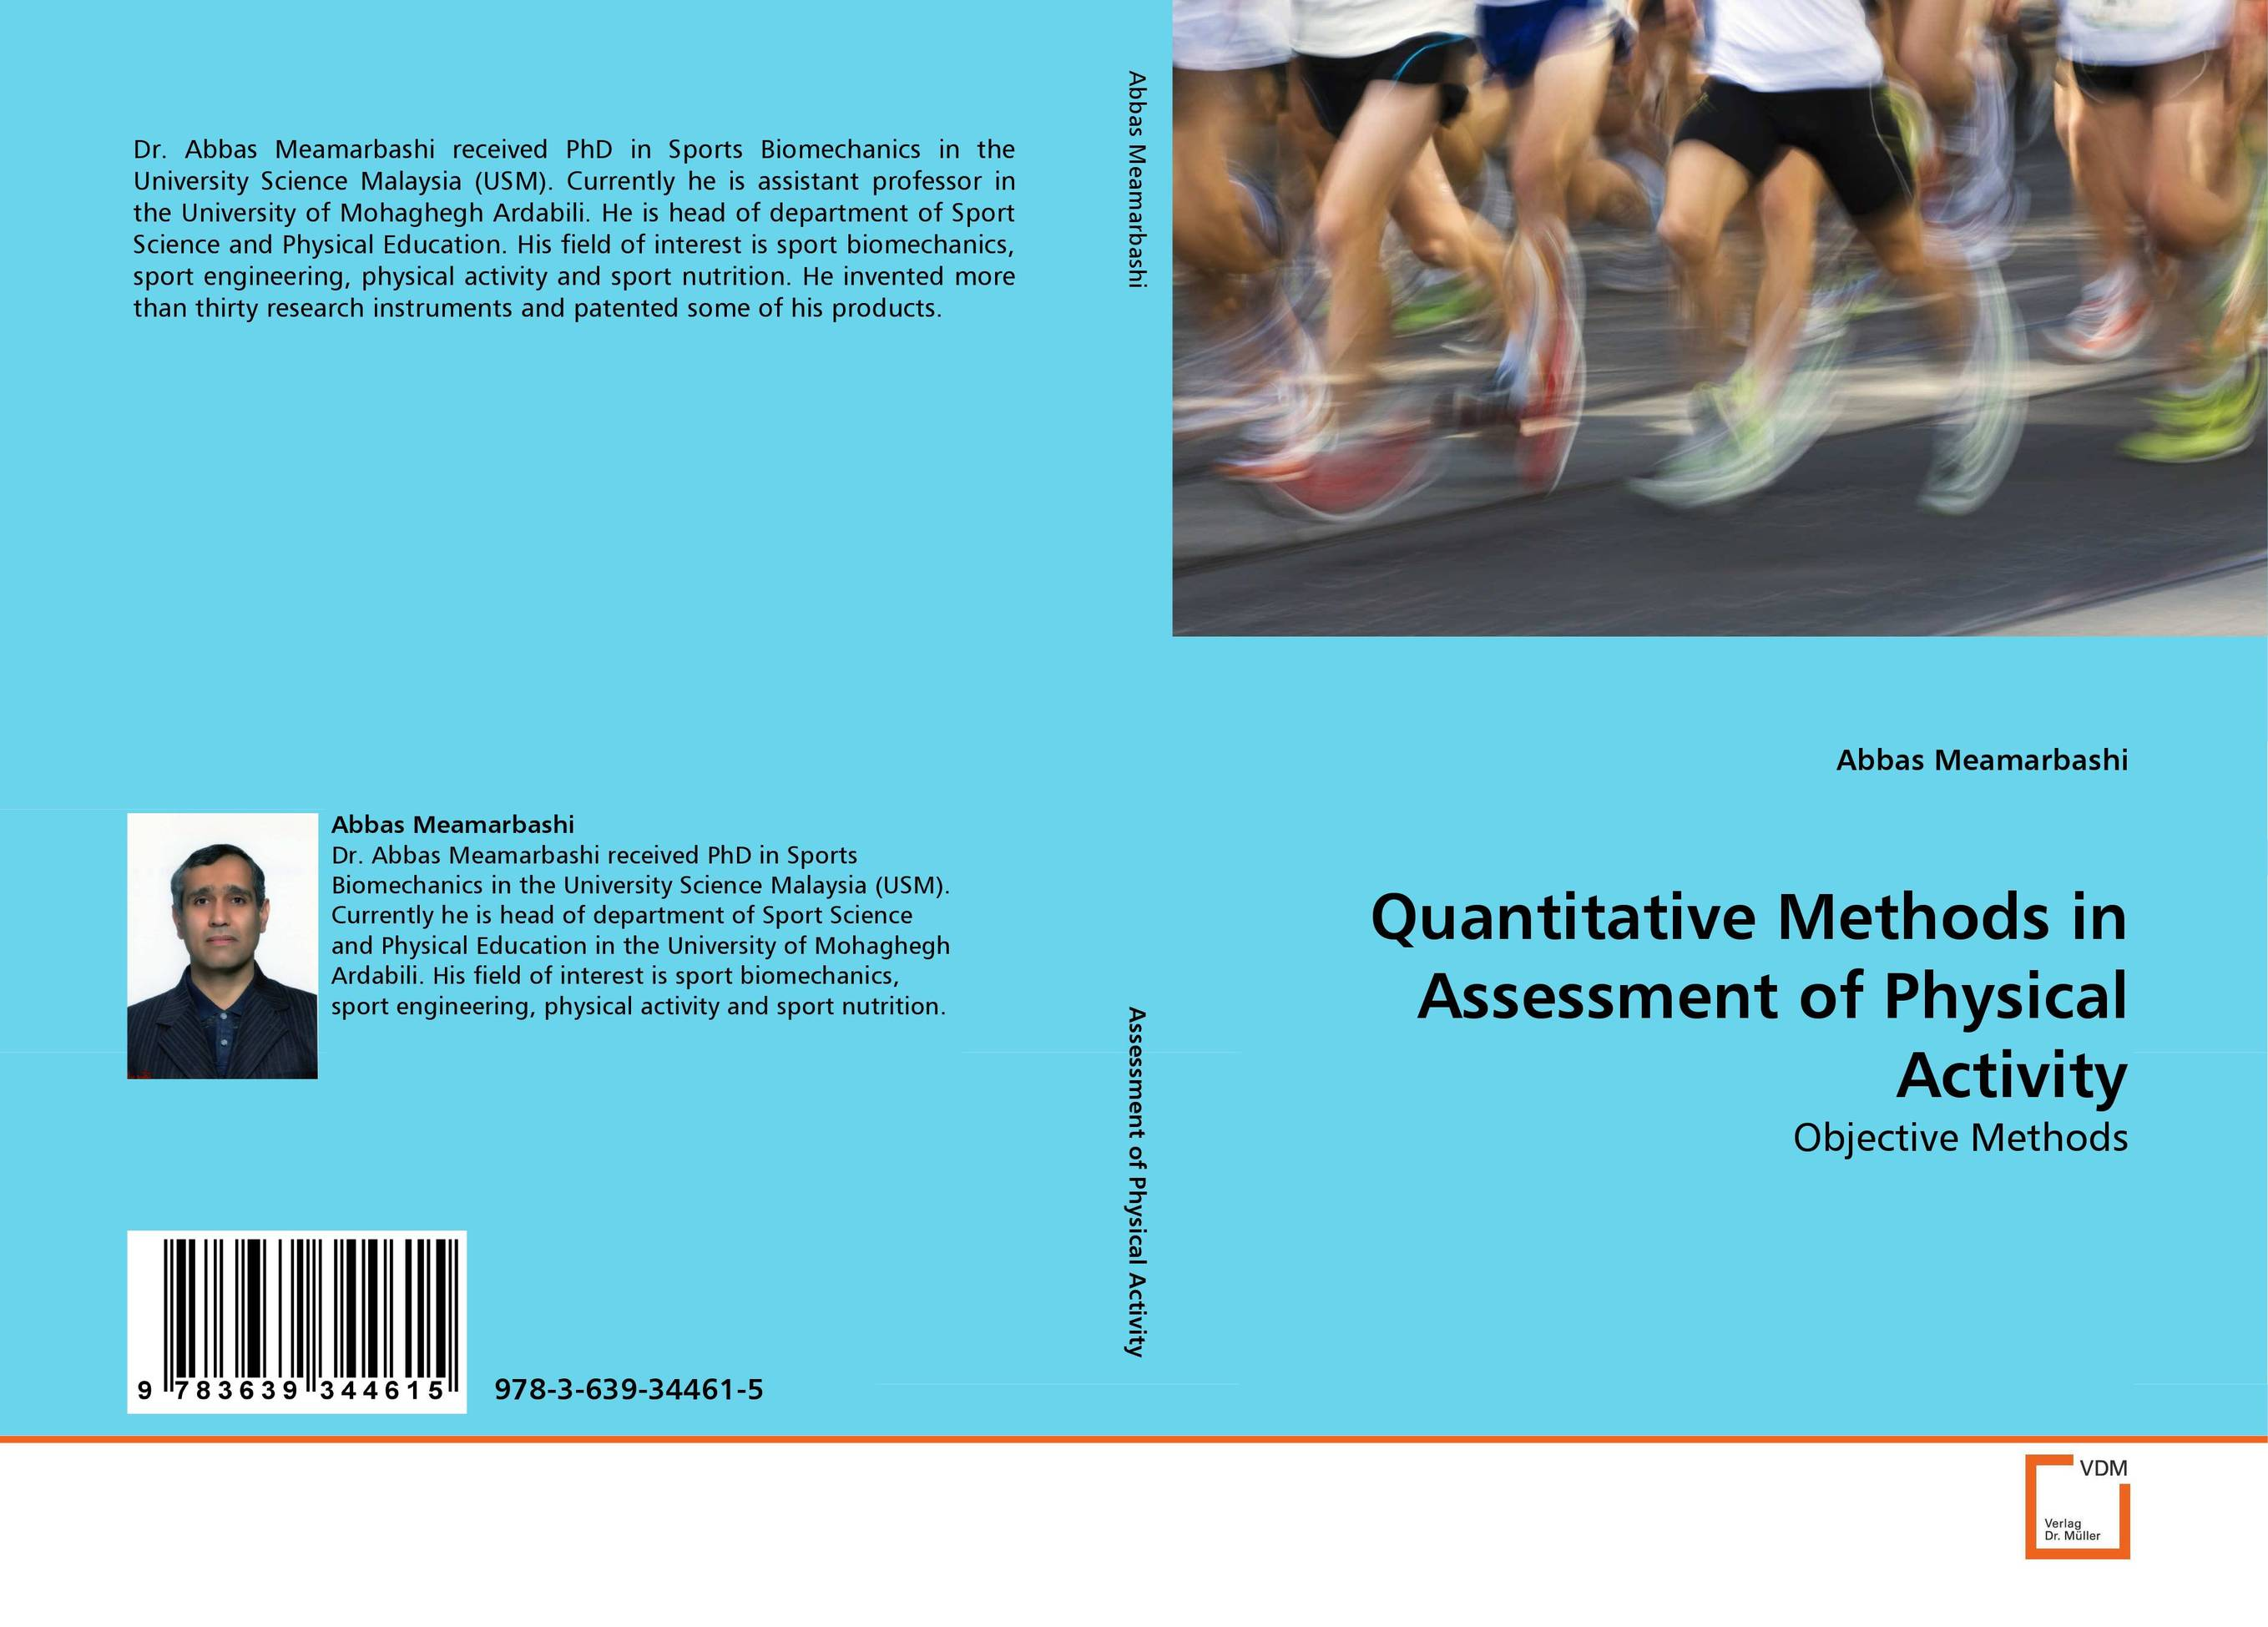 Quantitative Methods in Assessment of Physical Activity